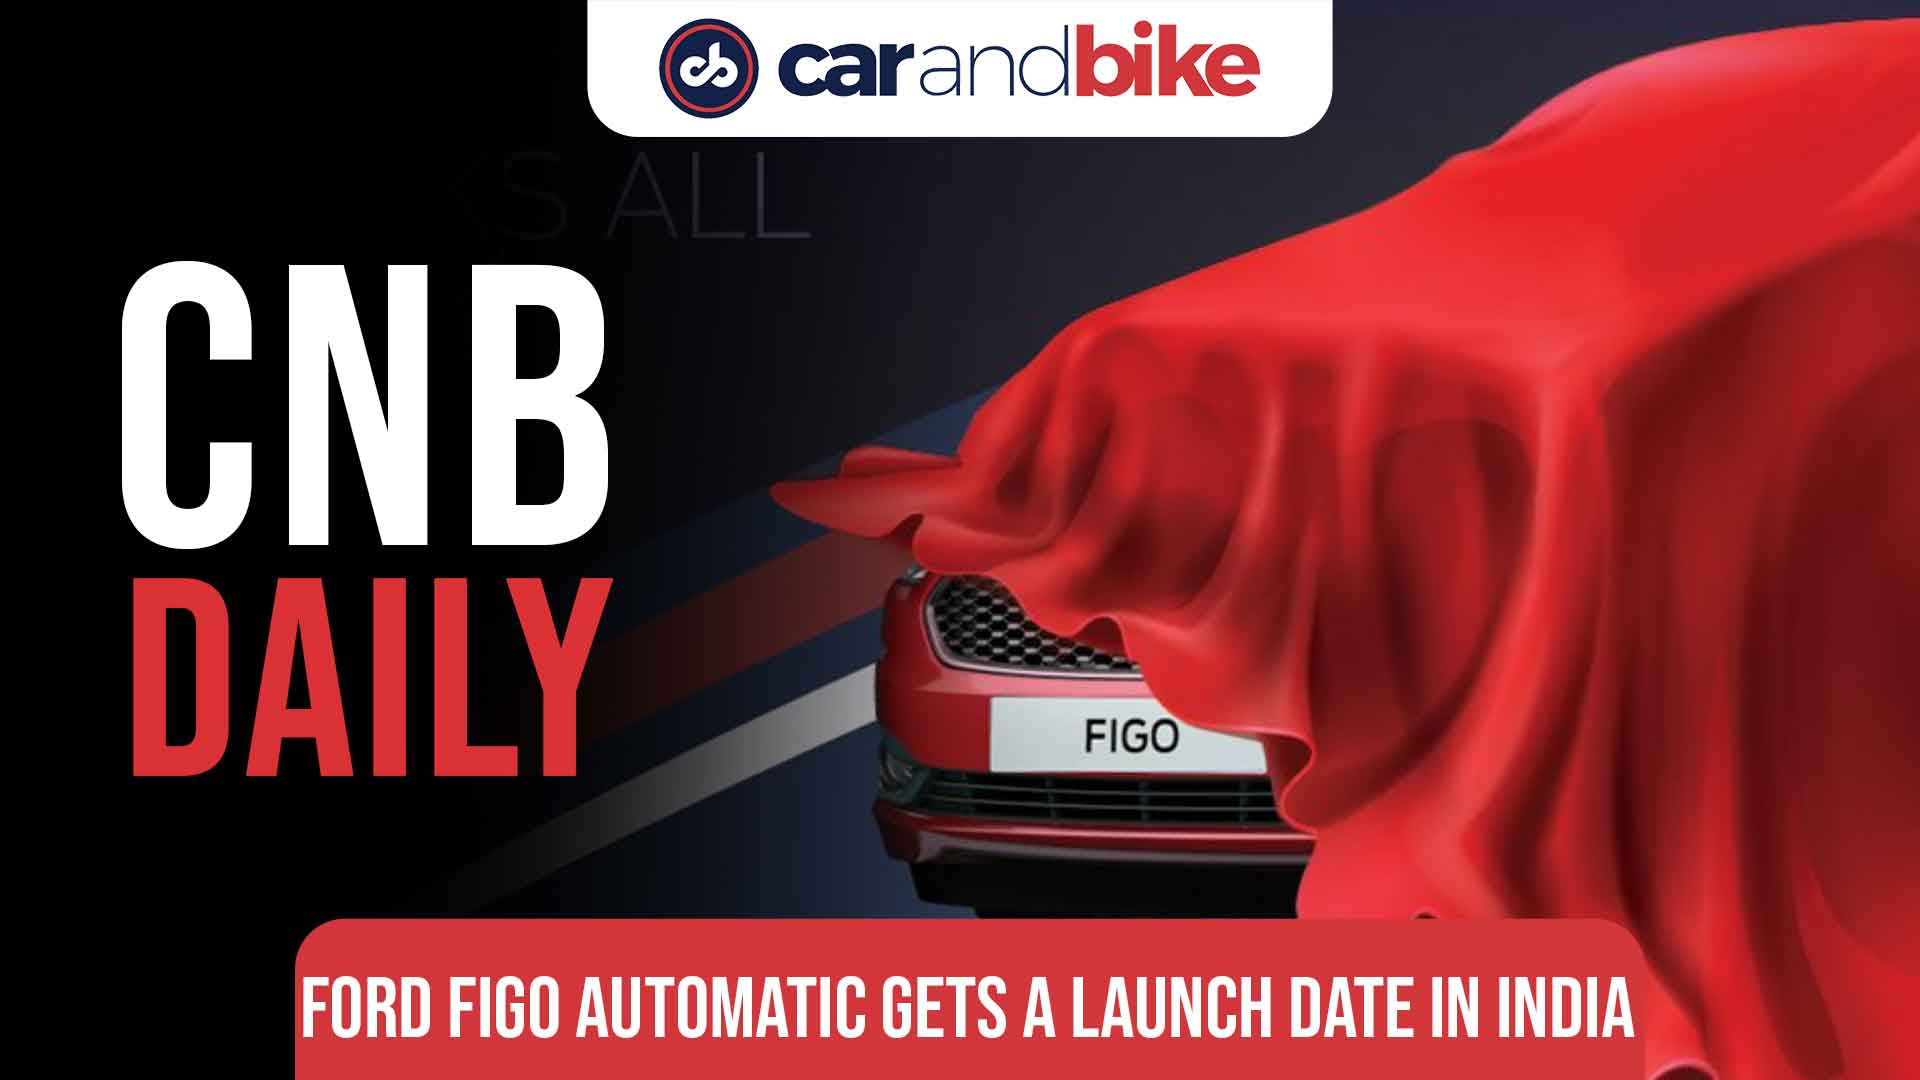 Ford Figo automatic to be launched on July 22